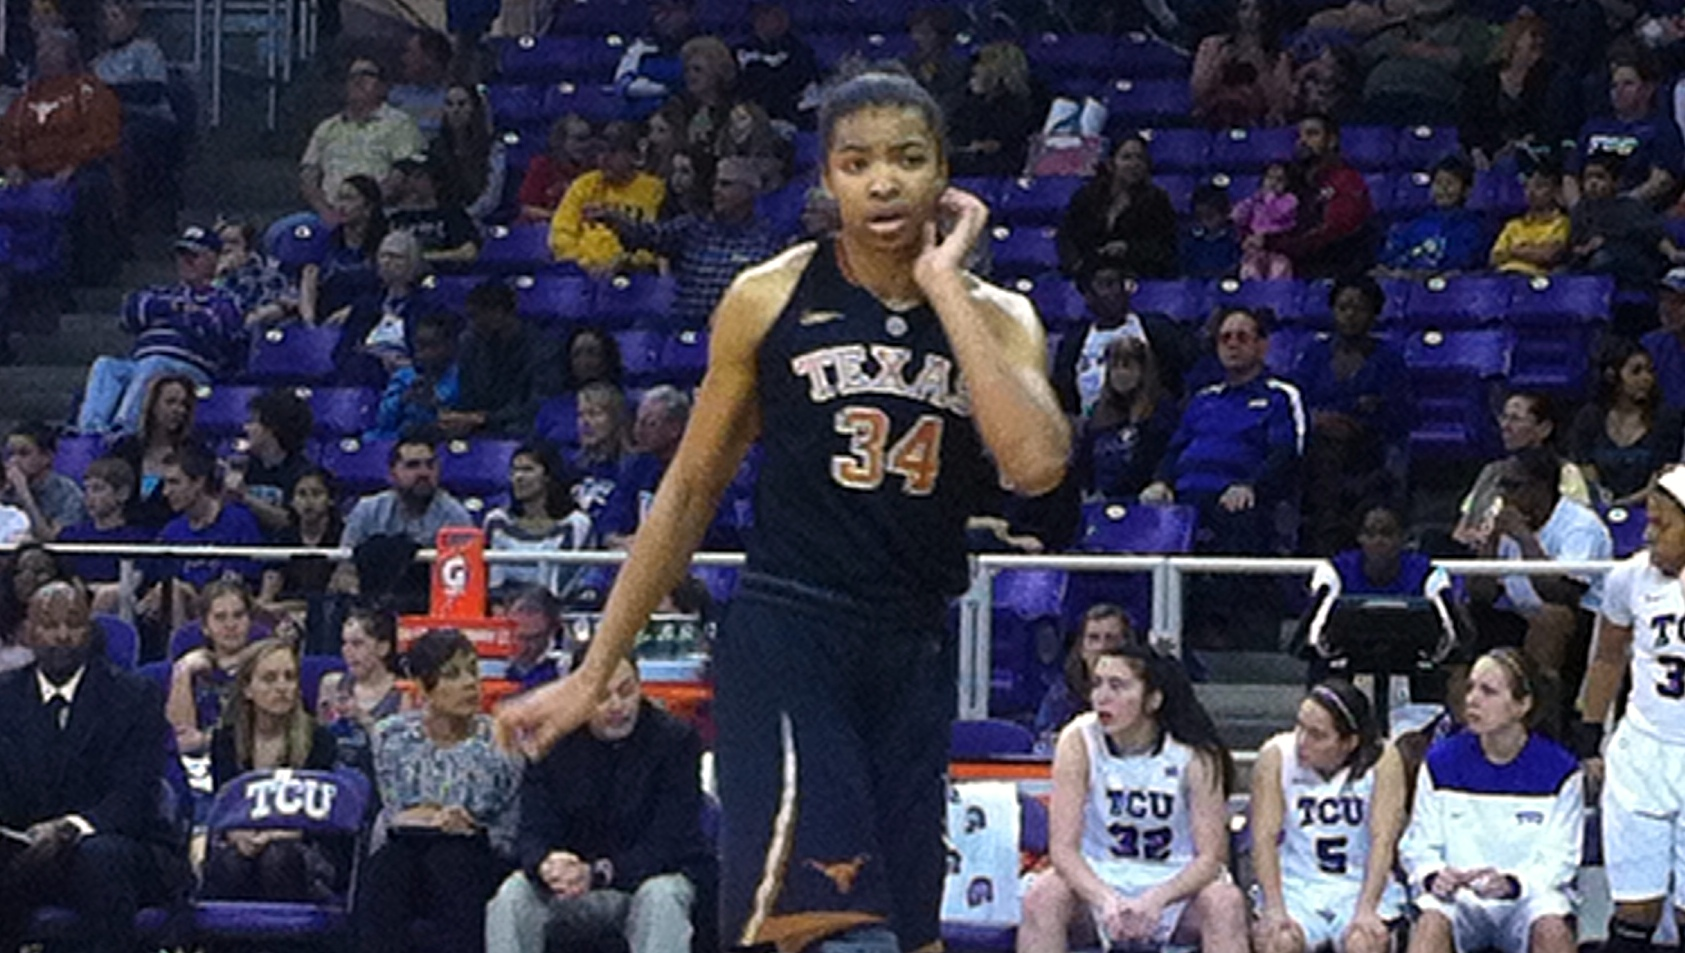 McGee-Stafford's double-double helps Texas survive TCU in battle between young teams